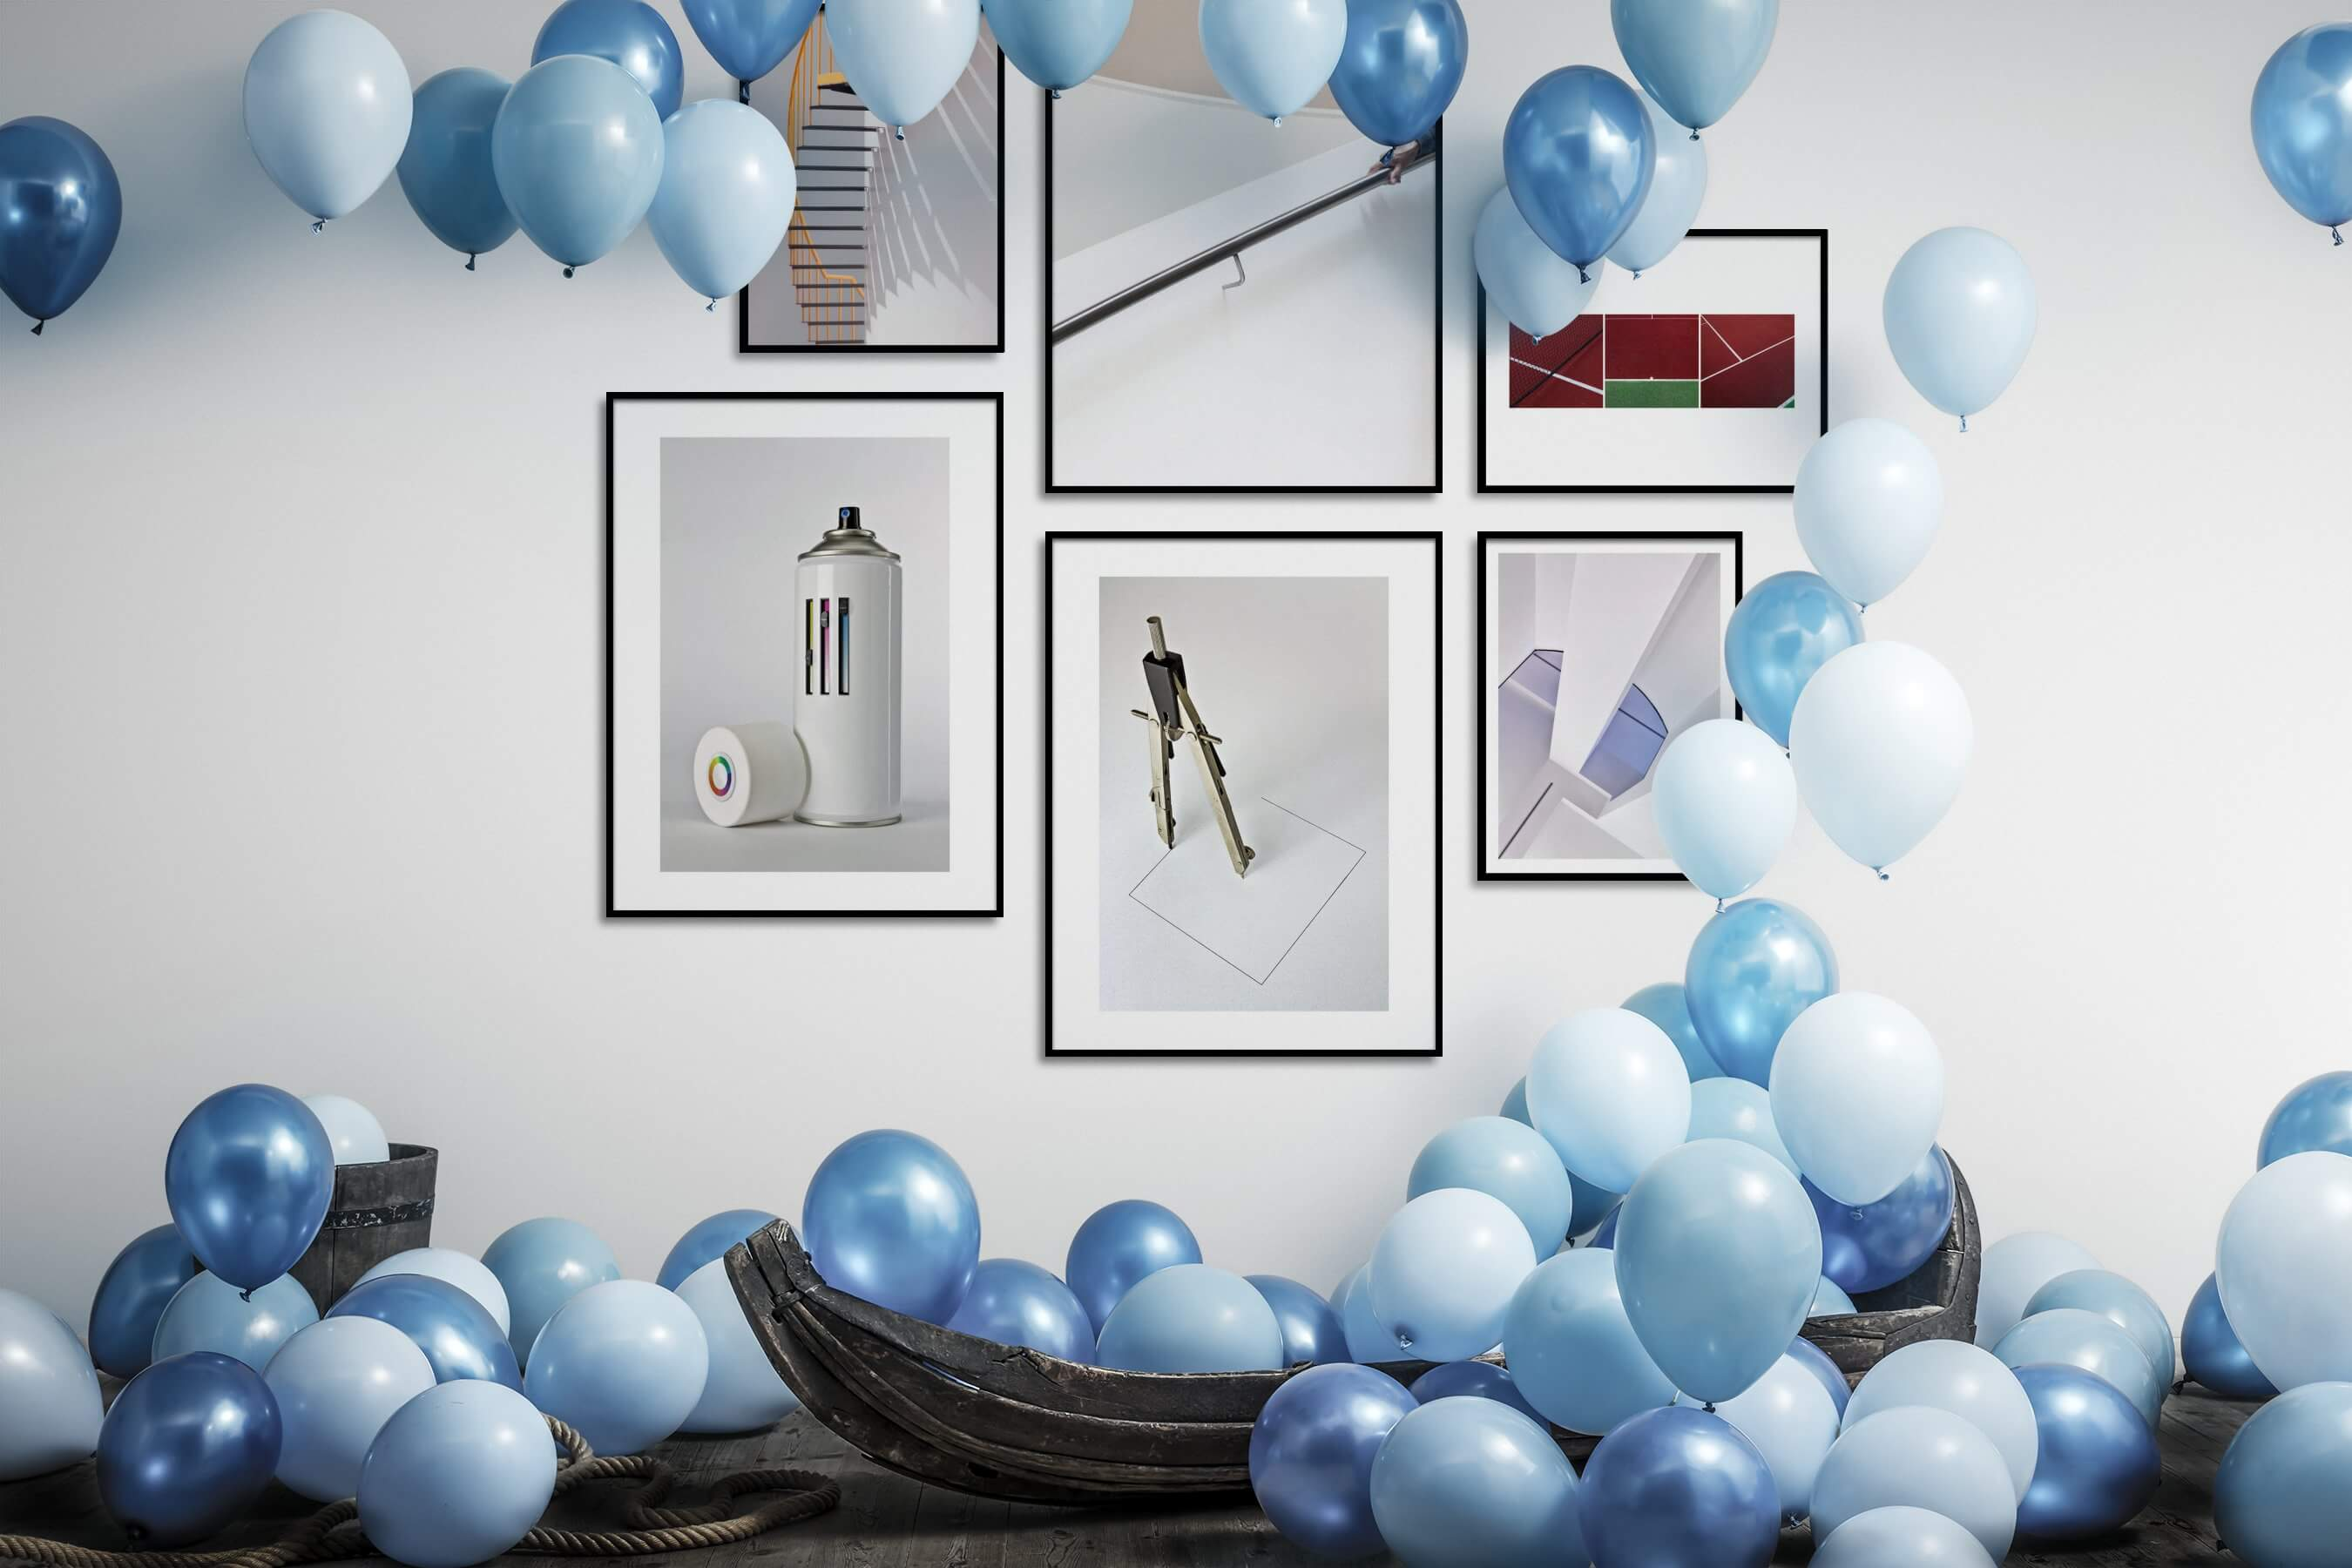 Gallery wall idea with six framed pictures arranged on a wall depicting For the Minimalist and For the Moderate